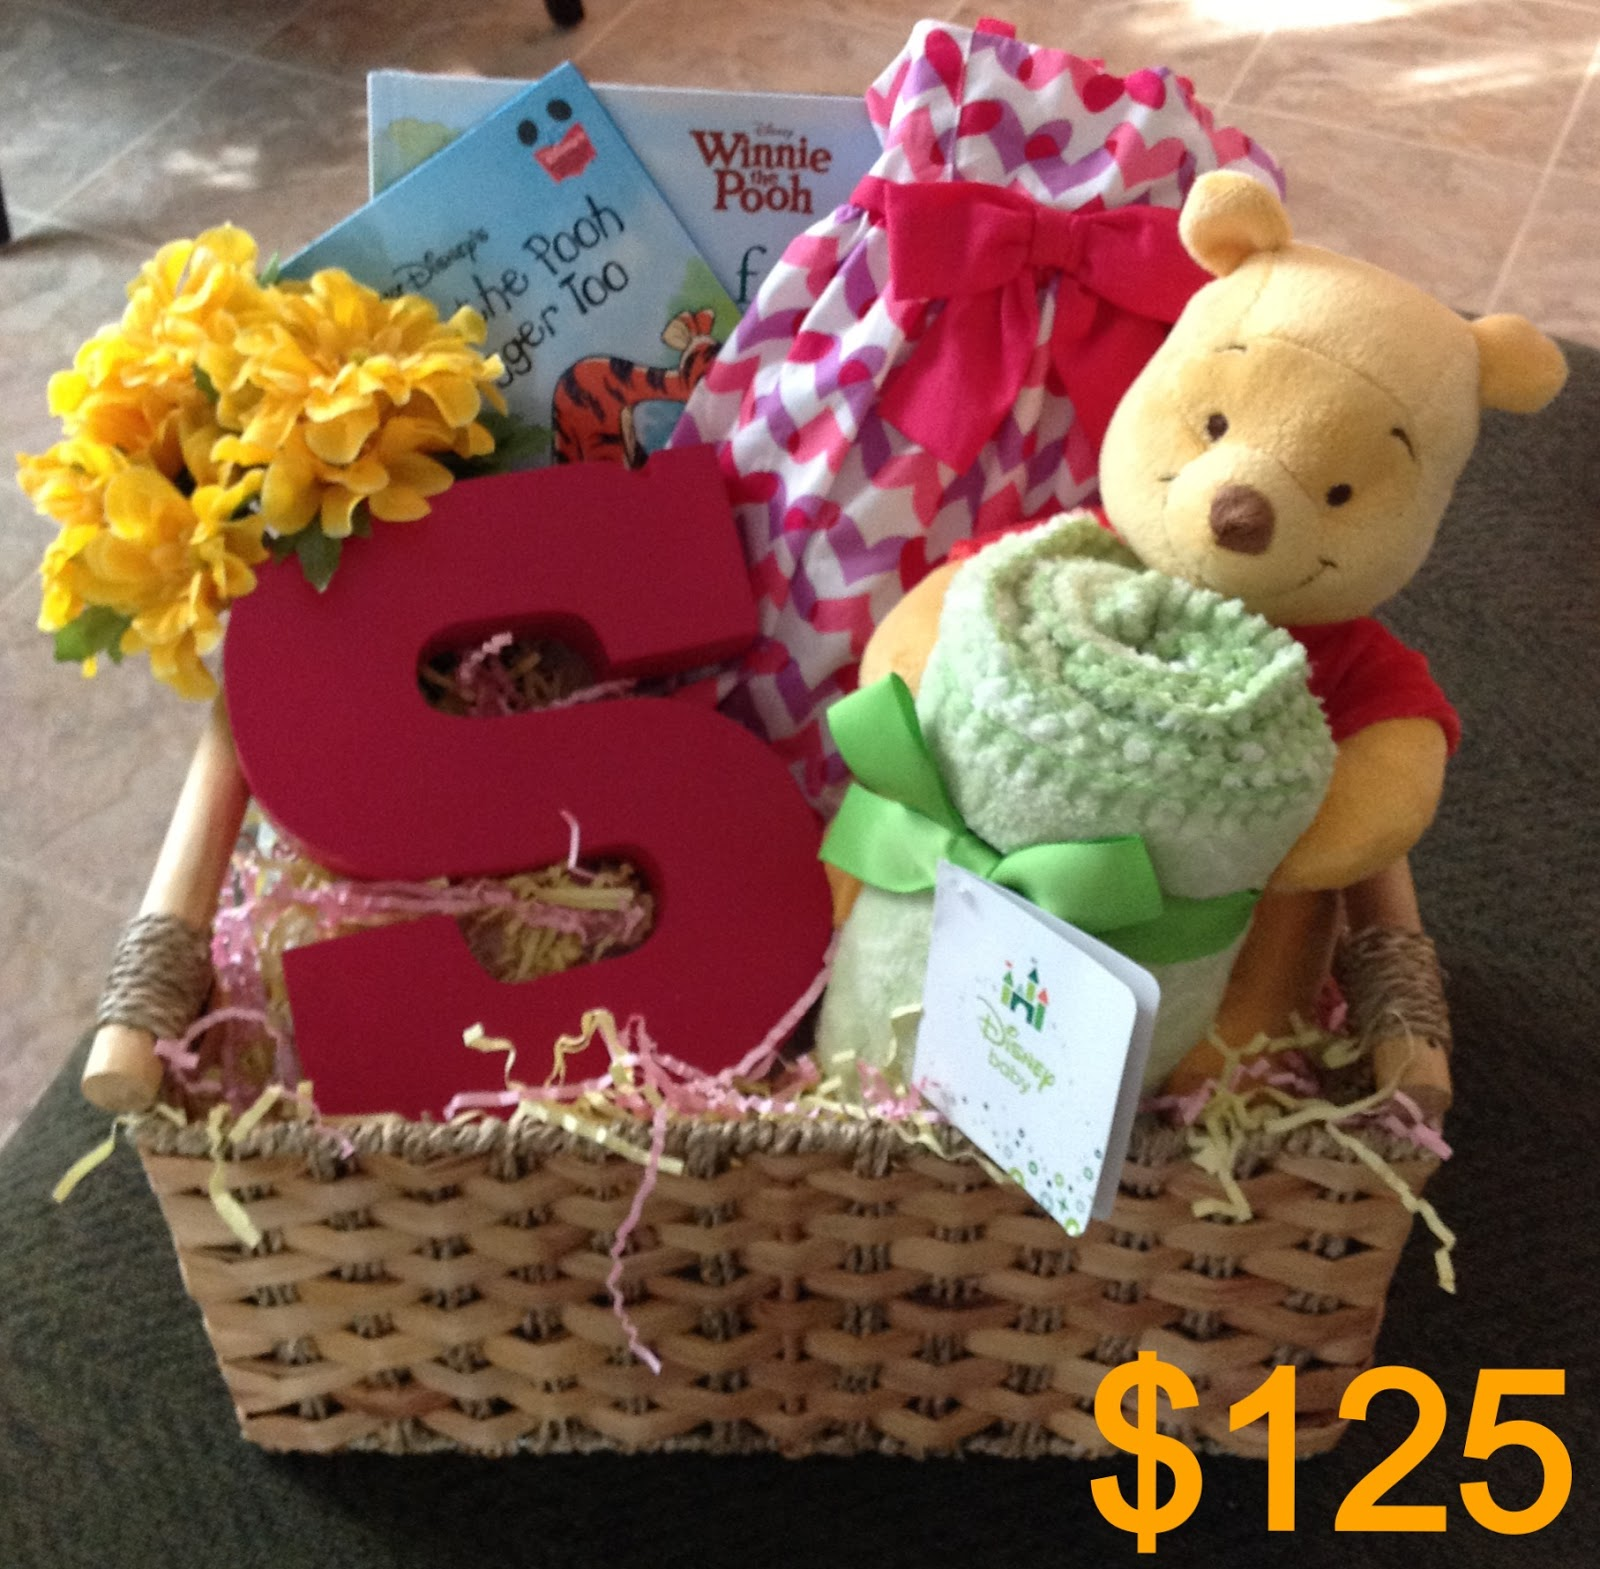 athalia 39 s gift baskets shop baby girl basket winnie the pooh theme. Black Bedroom Furniture Sets. Home Design Ideas